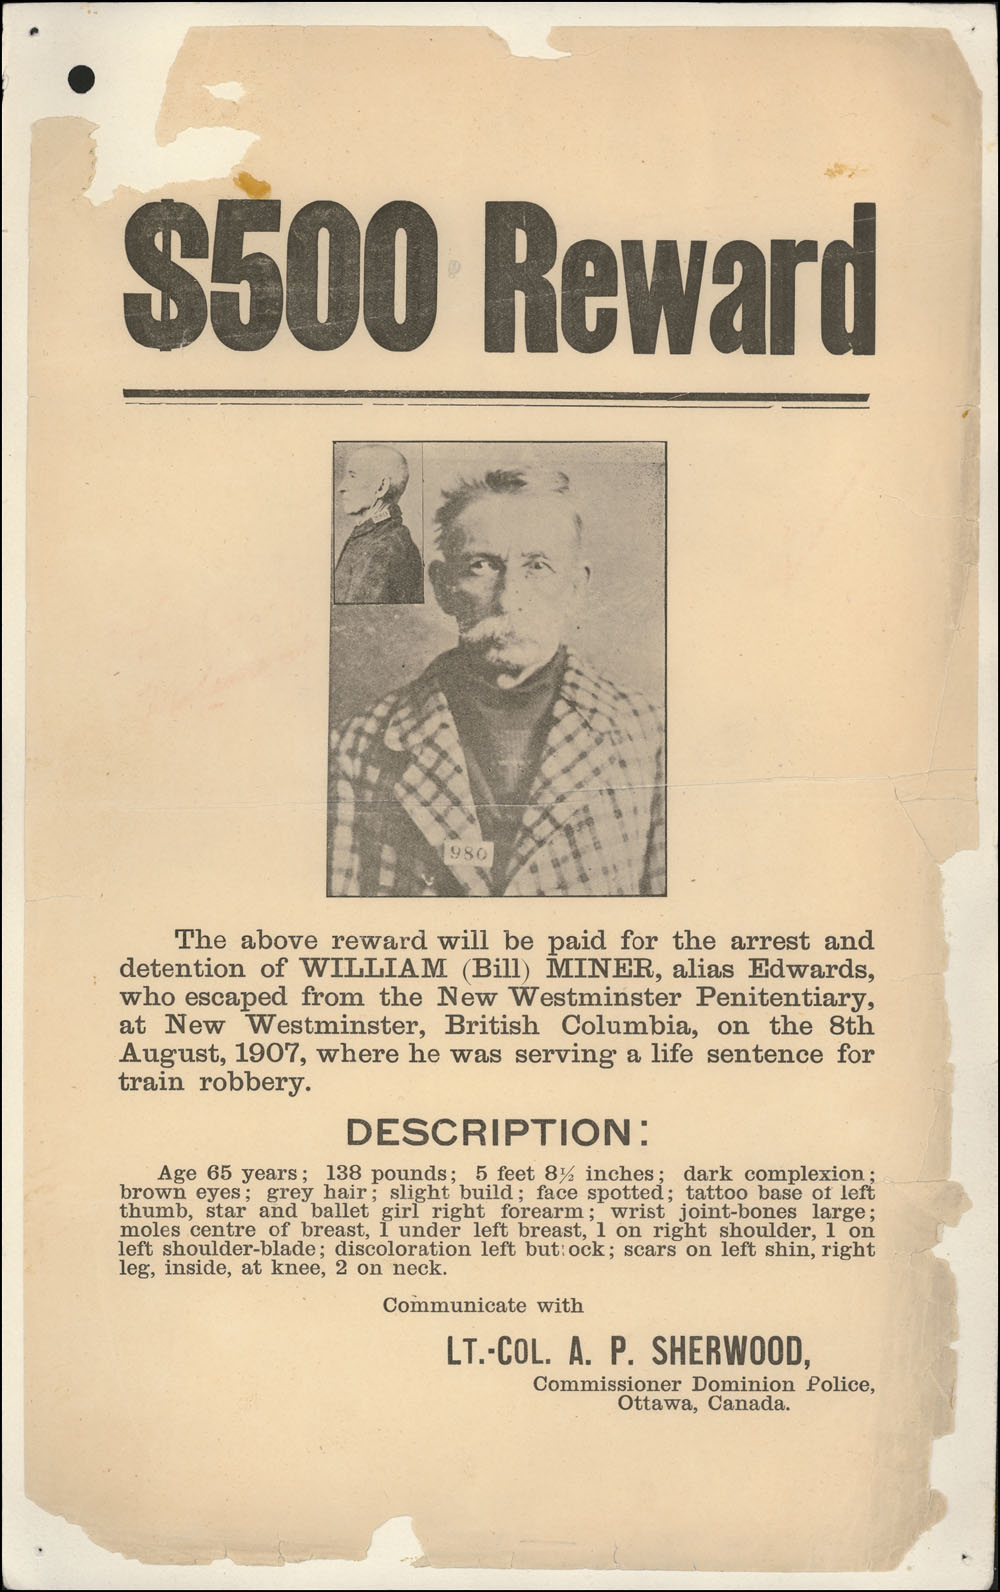 Poster showing photograph of Bill Miner, announcing a $500 reward for his recapture, listing details as to his escape, and describing his physical characteristics.